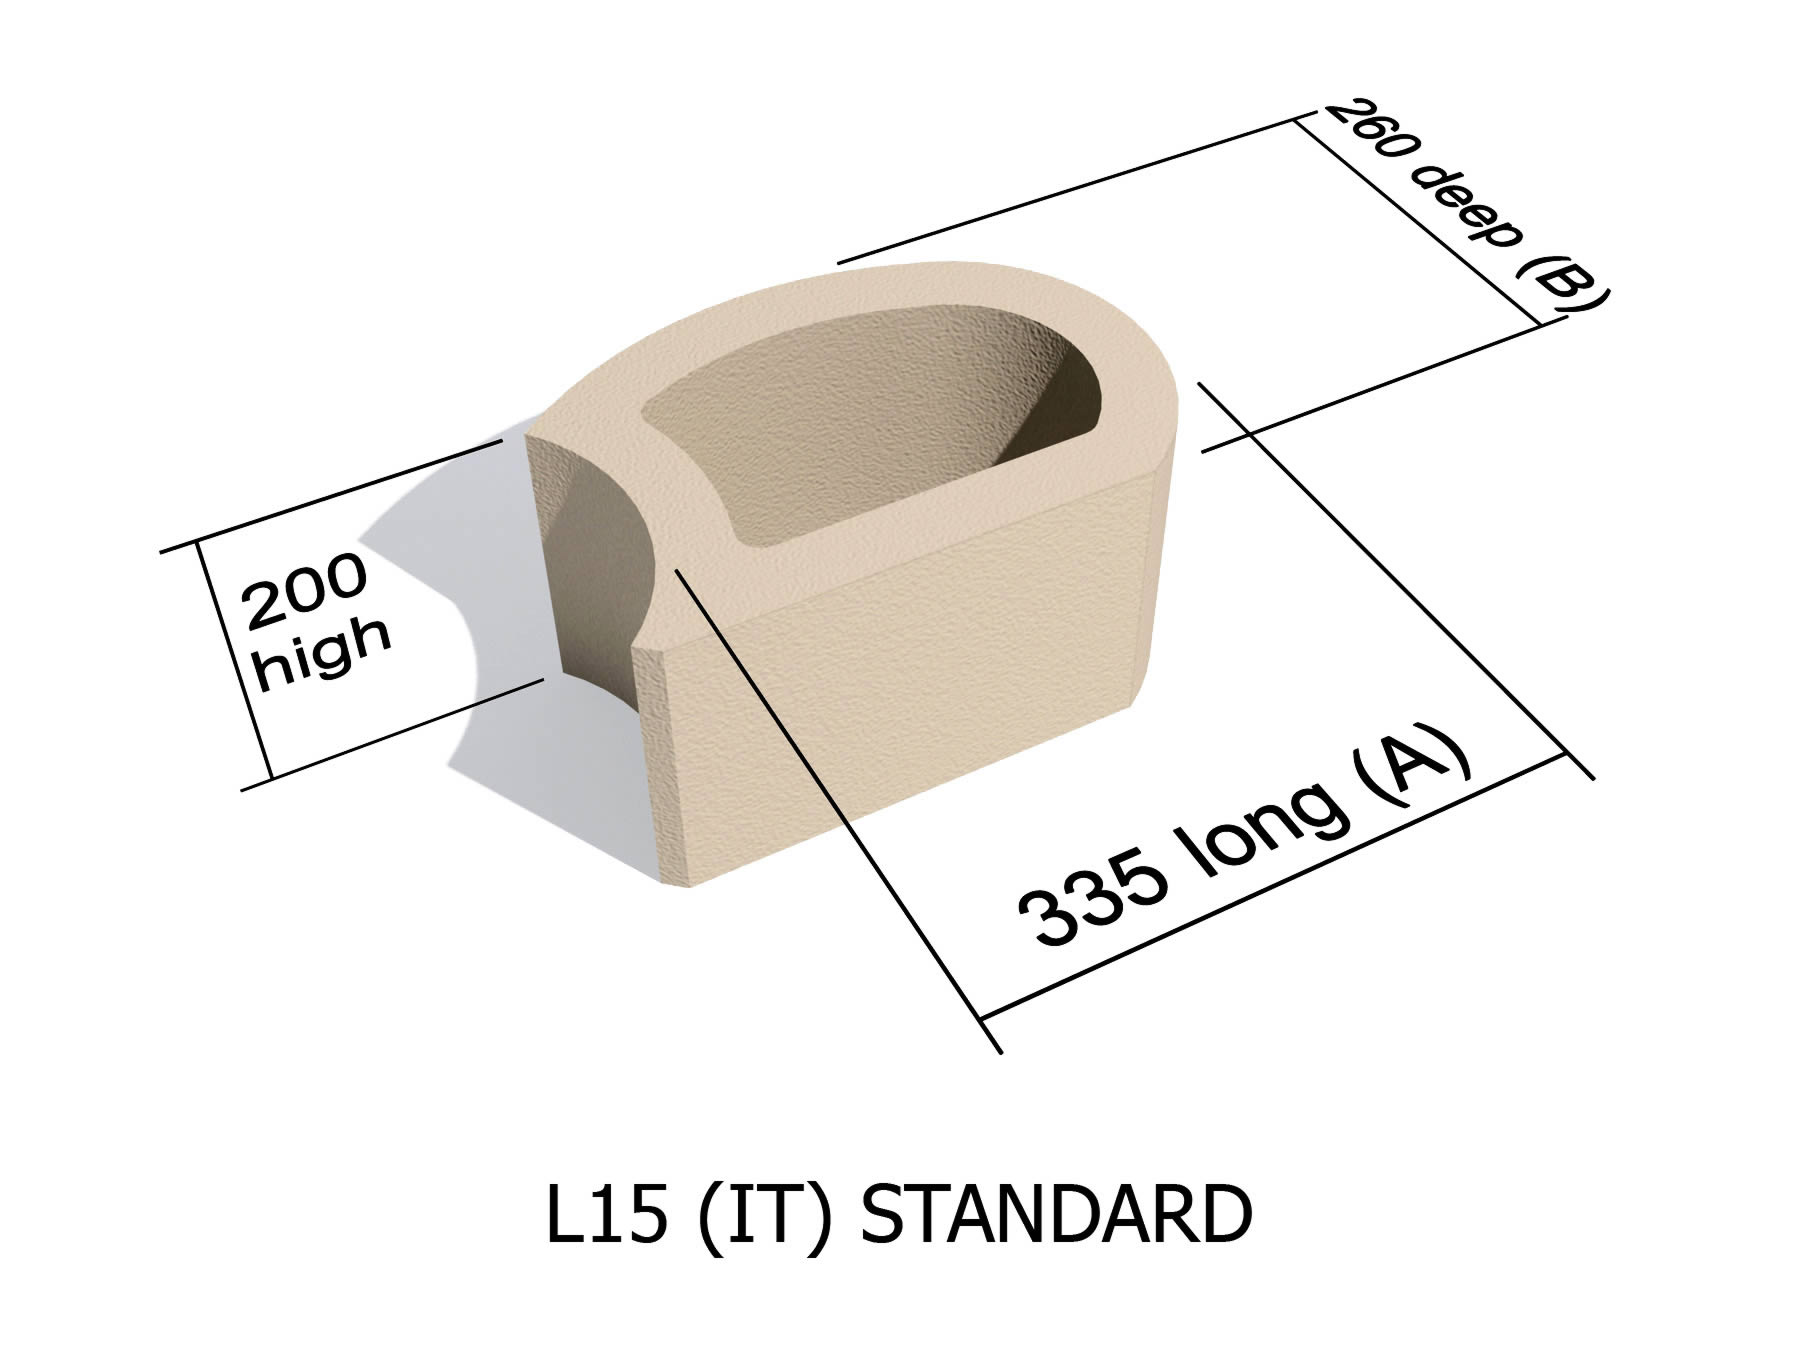 L15_IT smooth face retaining block